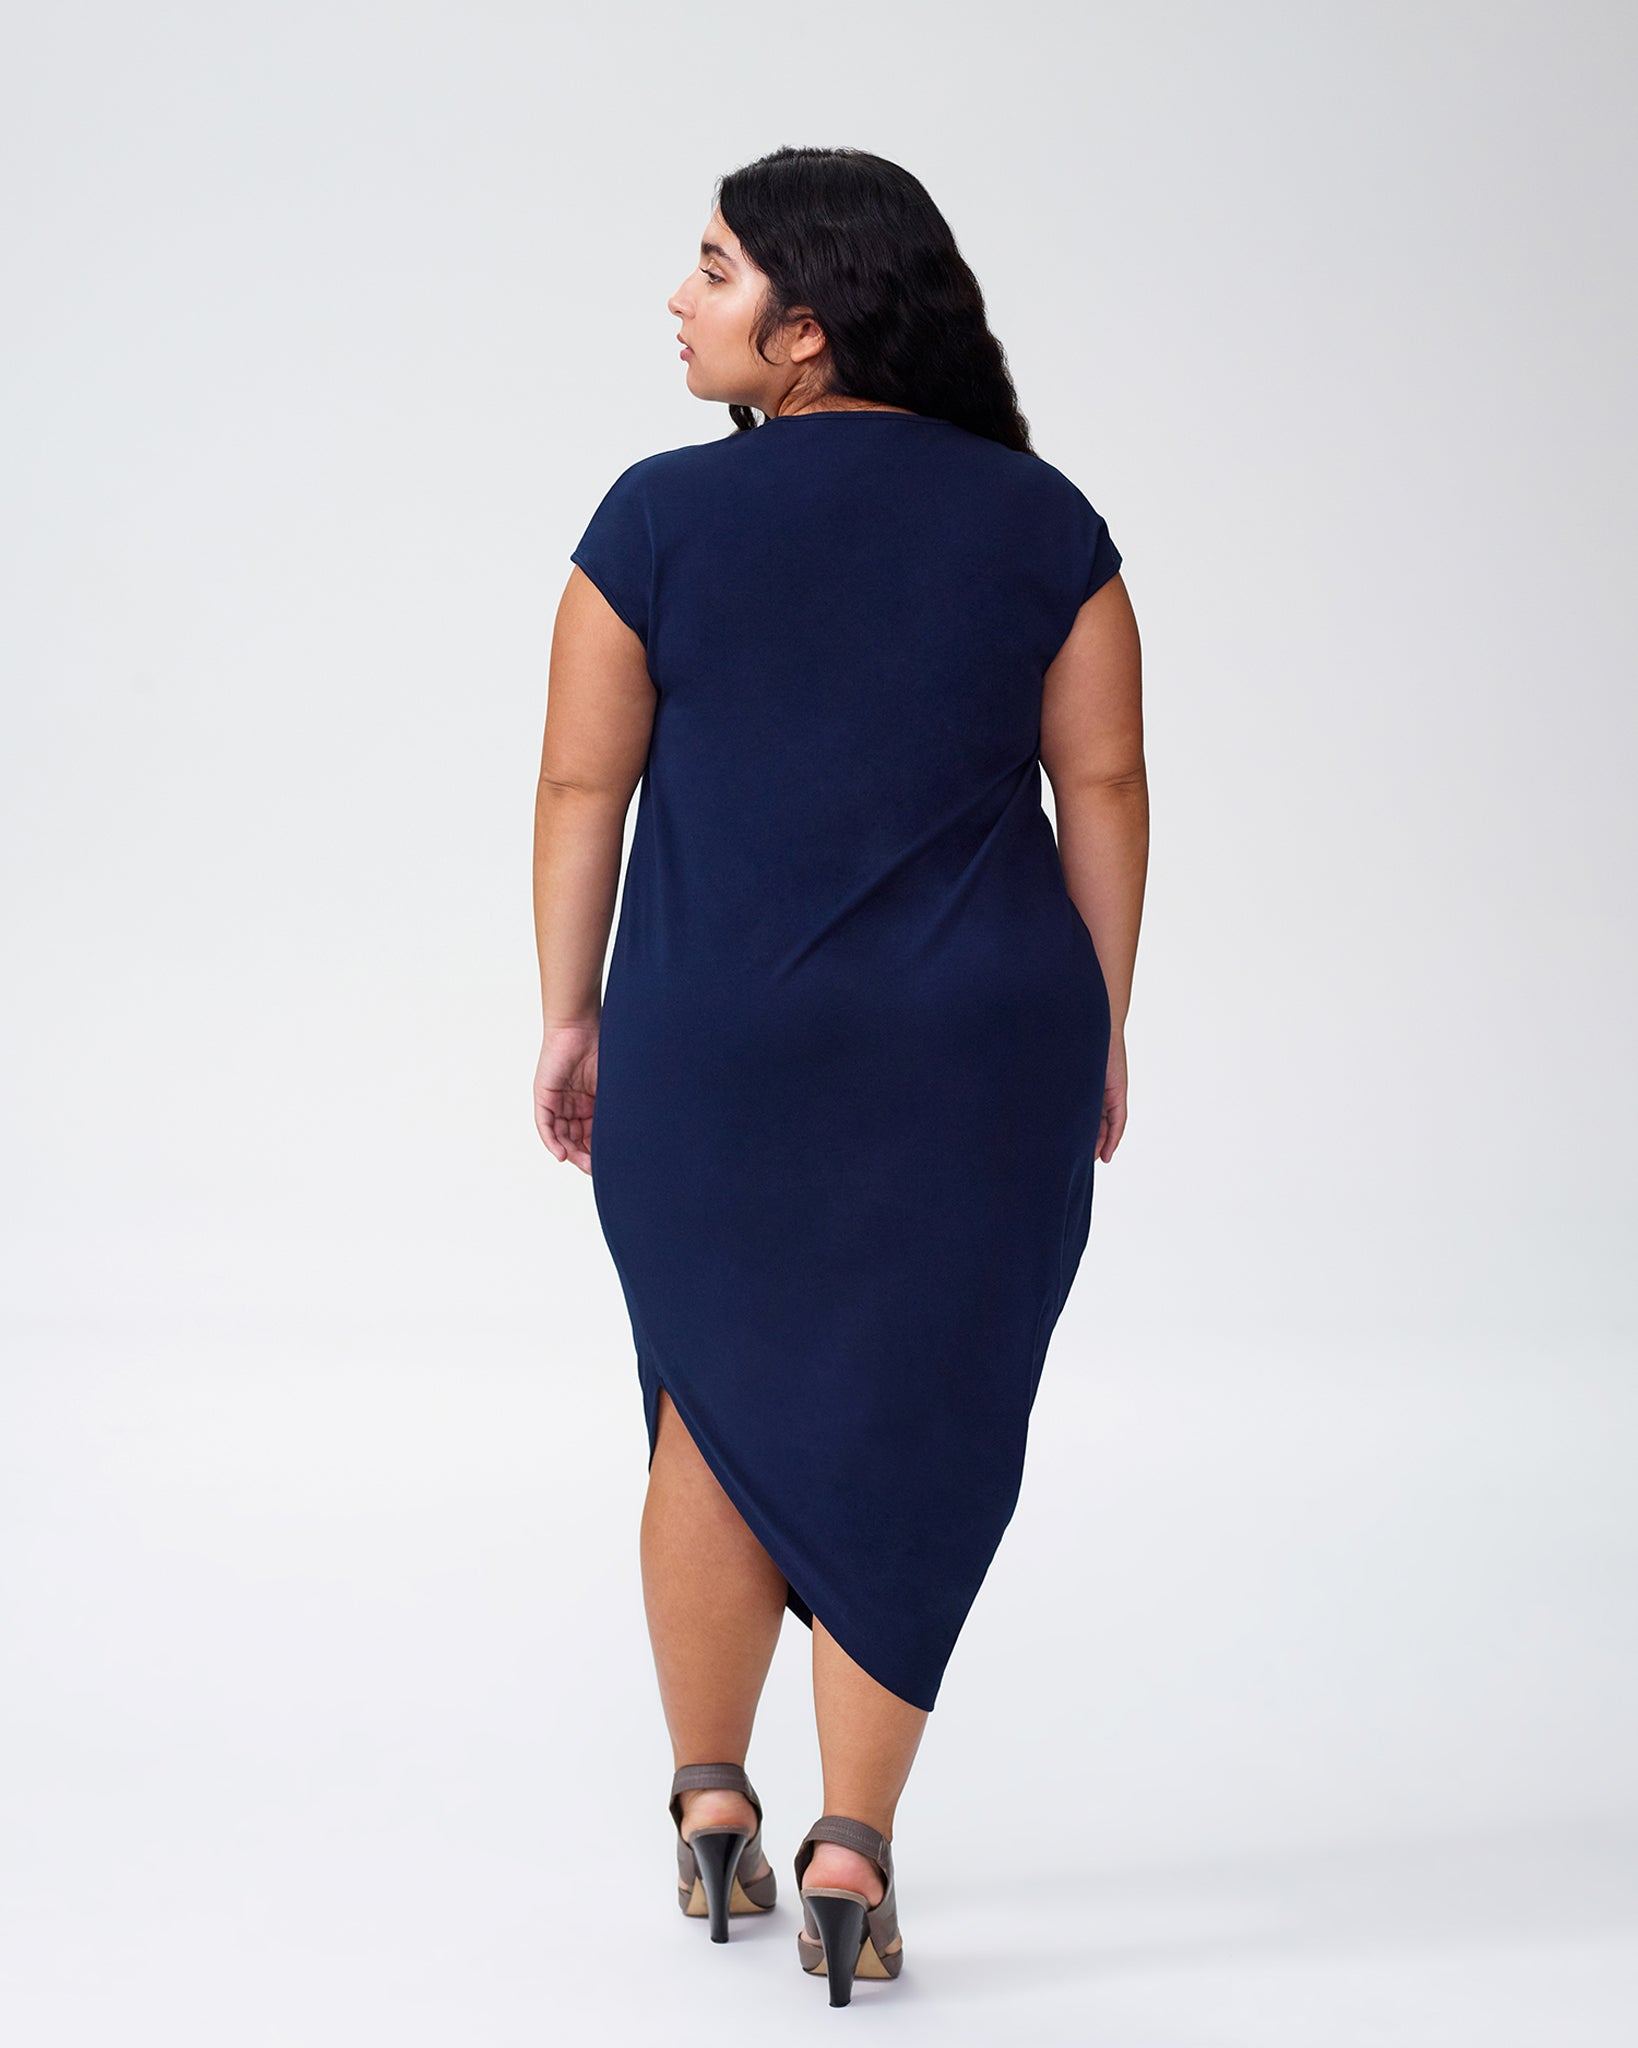 Petite Geneva Dress - Navy